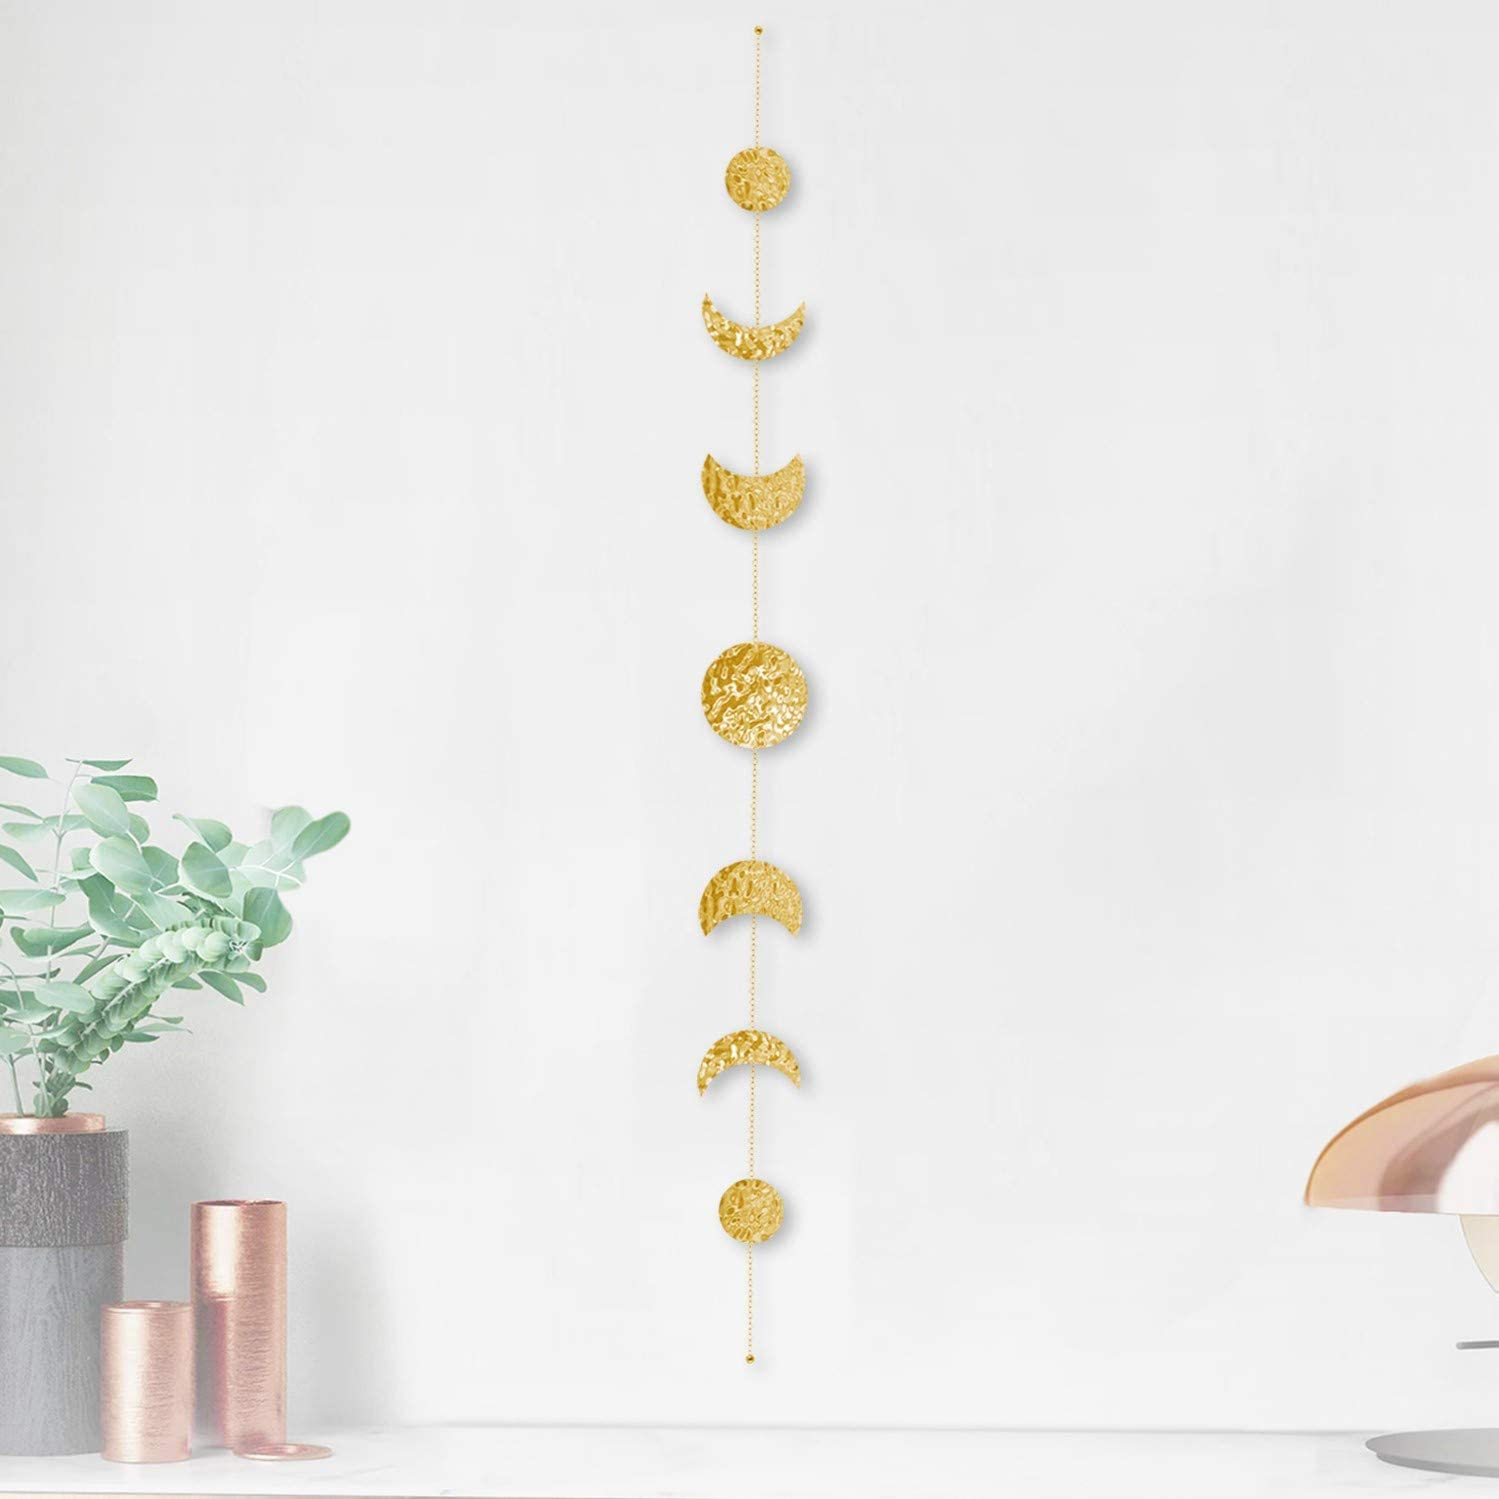 Shop Moon Phase Wall Hanging Boho Wall Decor Moon Phase Garland from Amazon on Openhaus